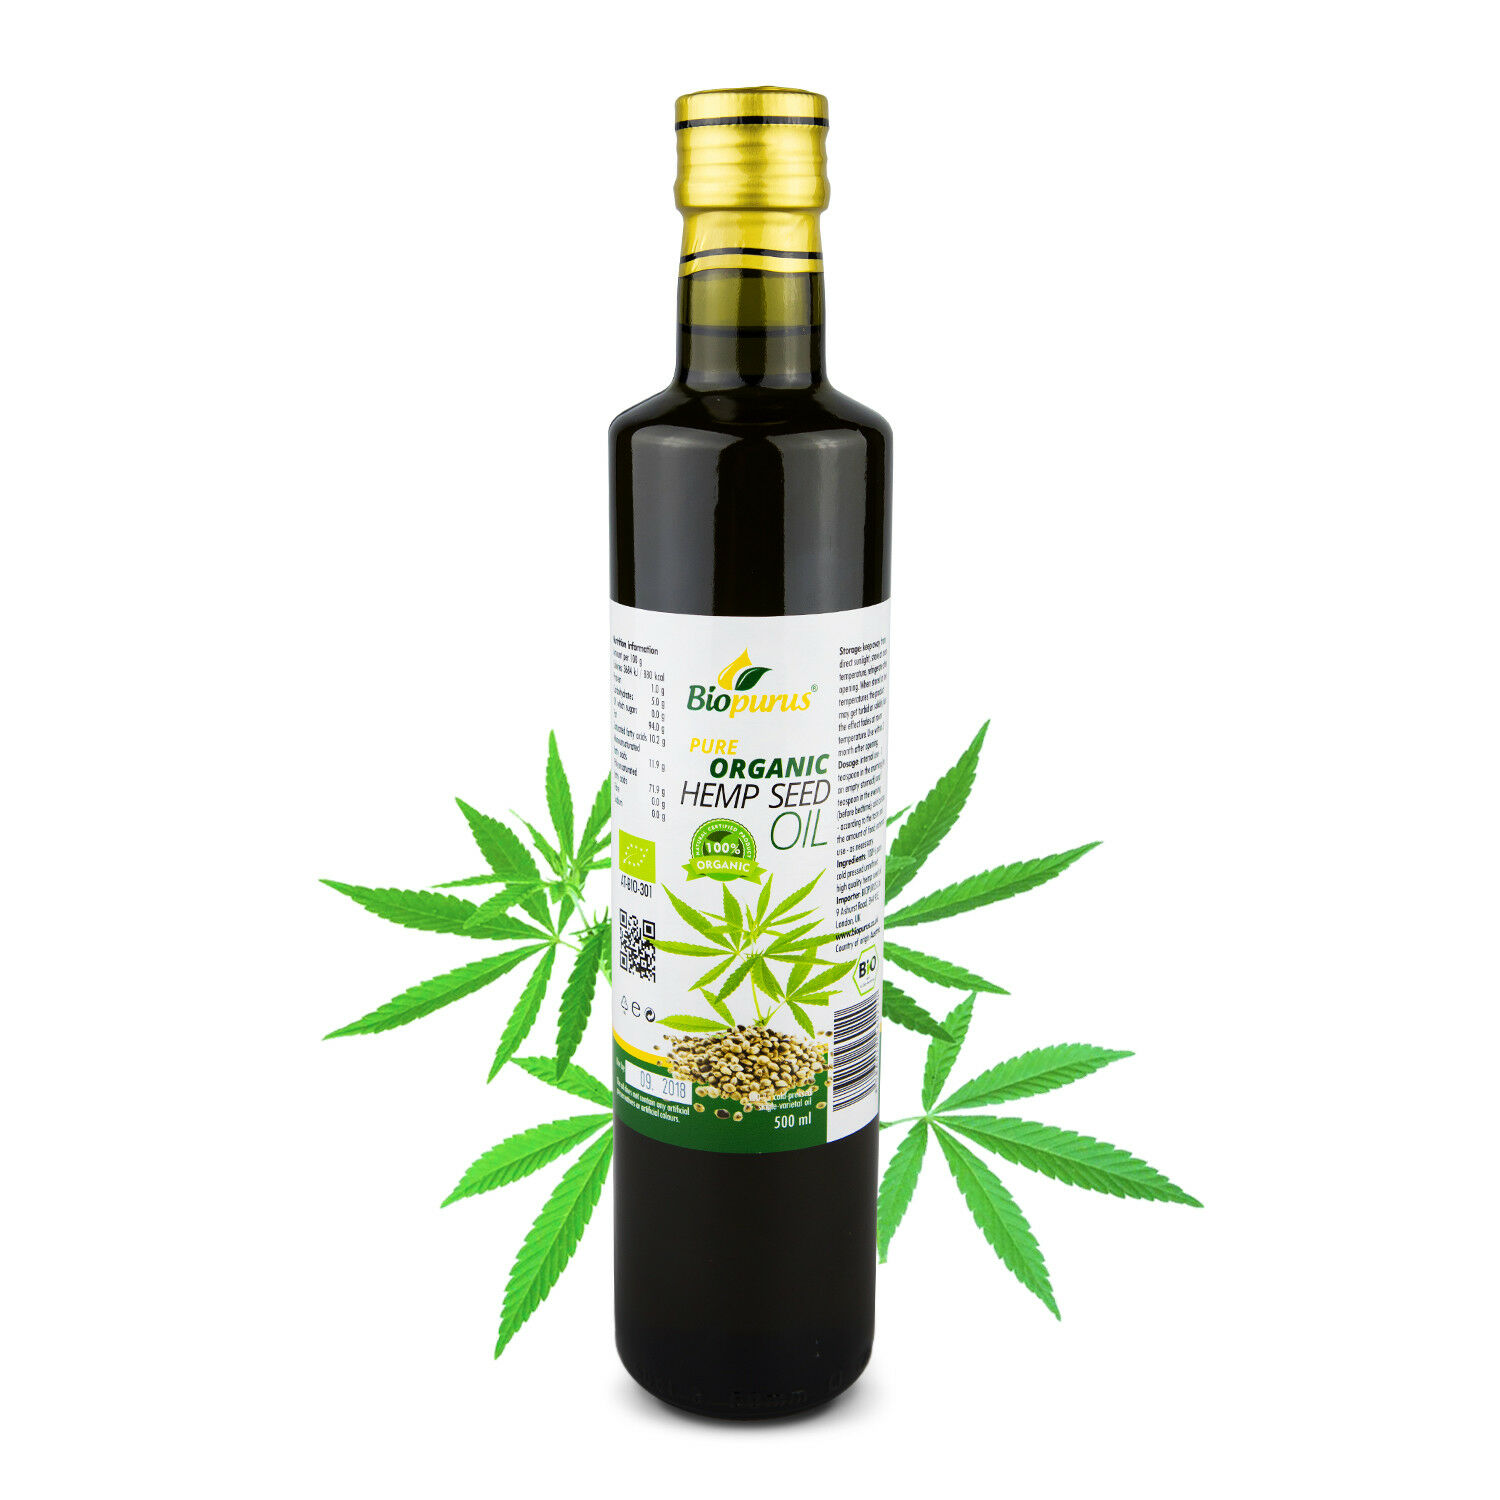 Pure Certified Organic Cold Pressed Hemp Seed Oil 500ml Biopurus